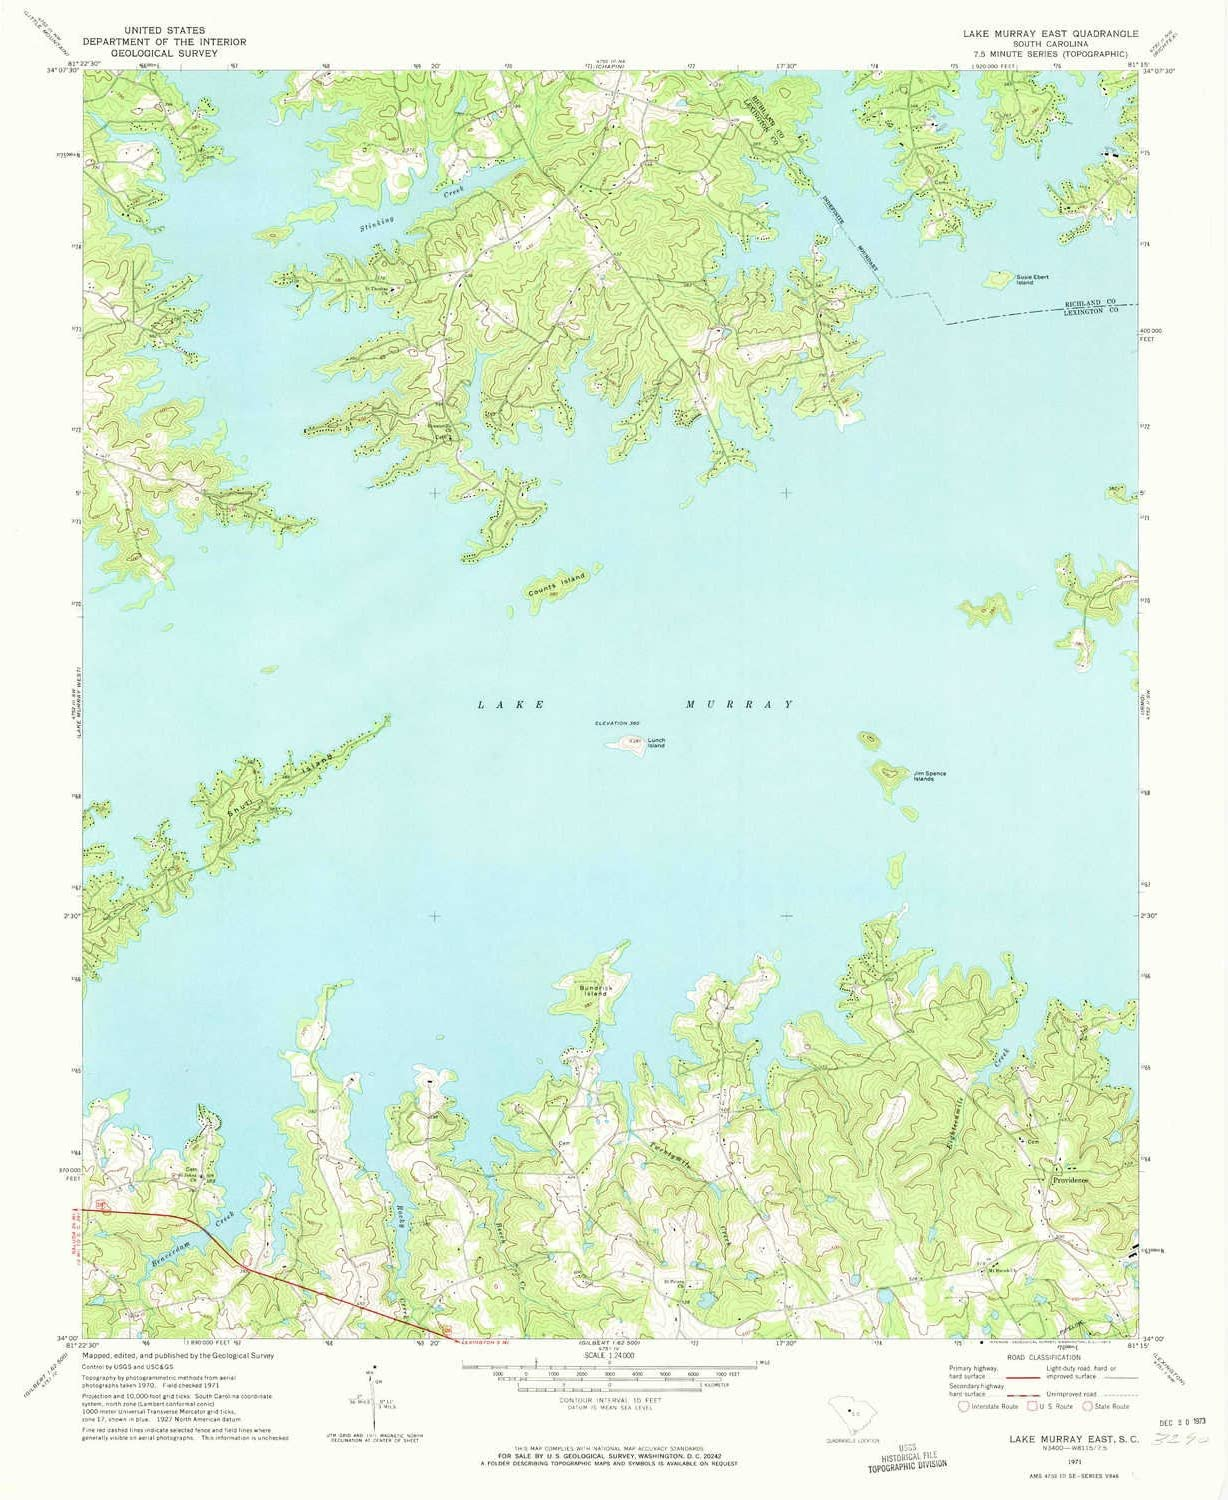 YellowMaps Lake Murray East SC High quality new topo 7.5 1:24000 Very popular map X 7. Scale